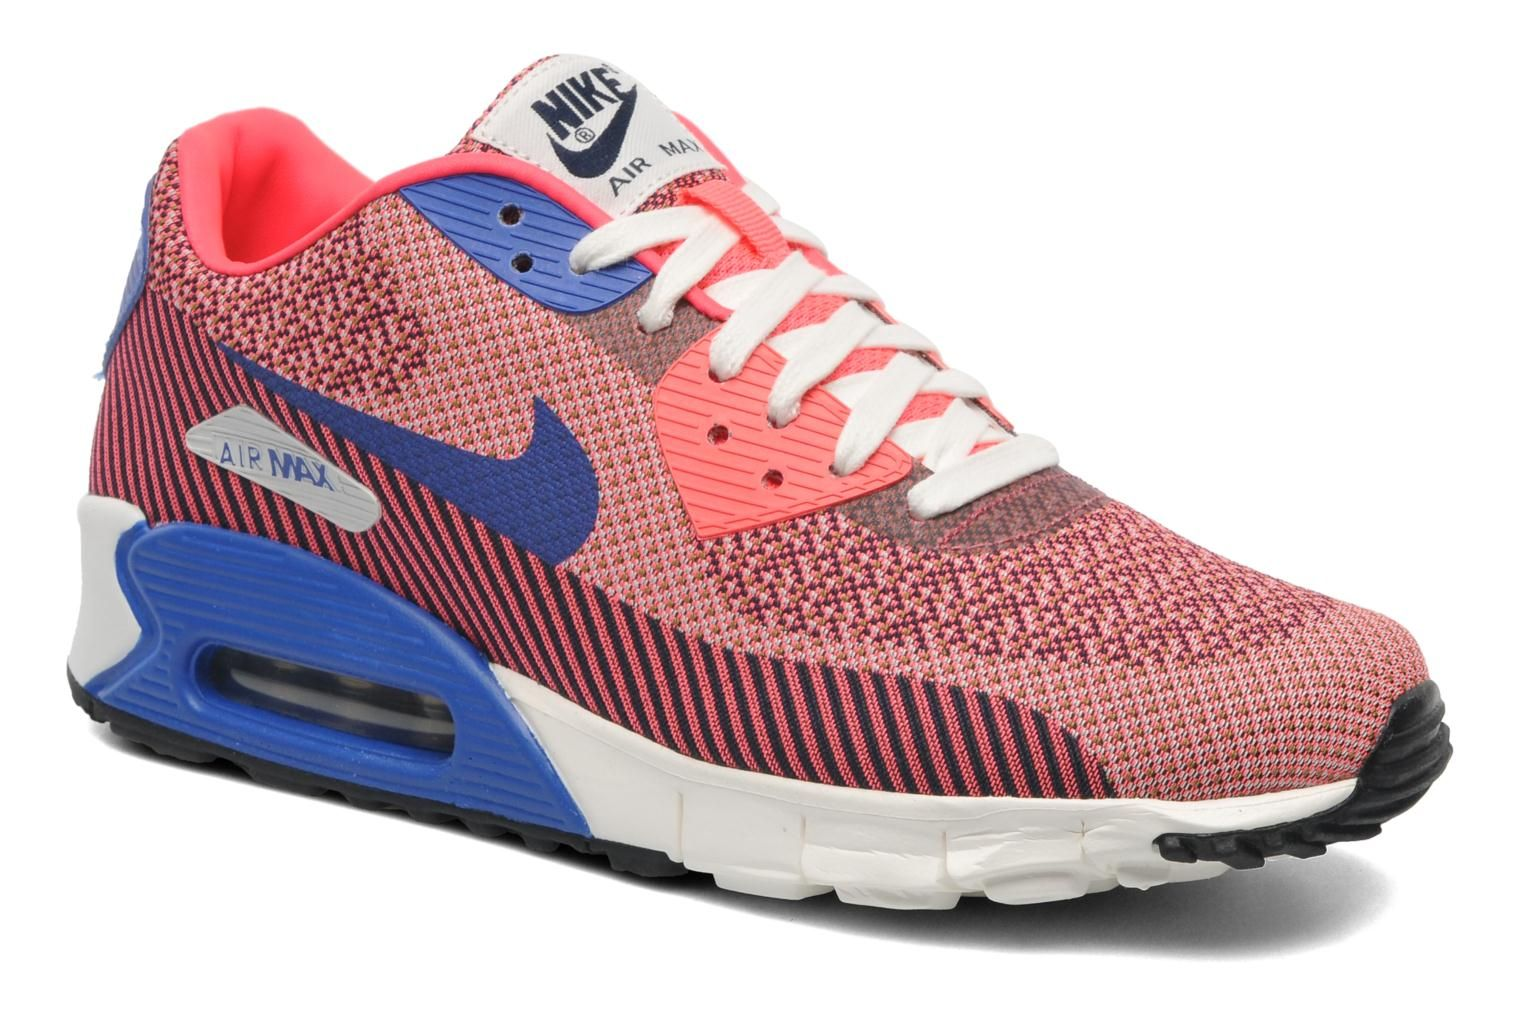 coral and blue nike air max 90   I need to walk with style ... 38d396b635e